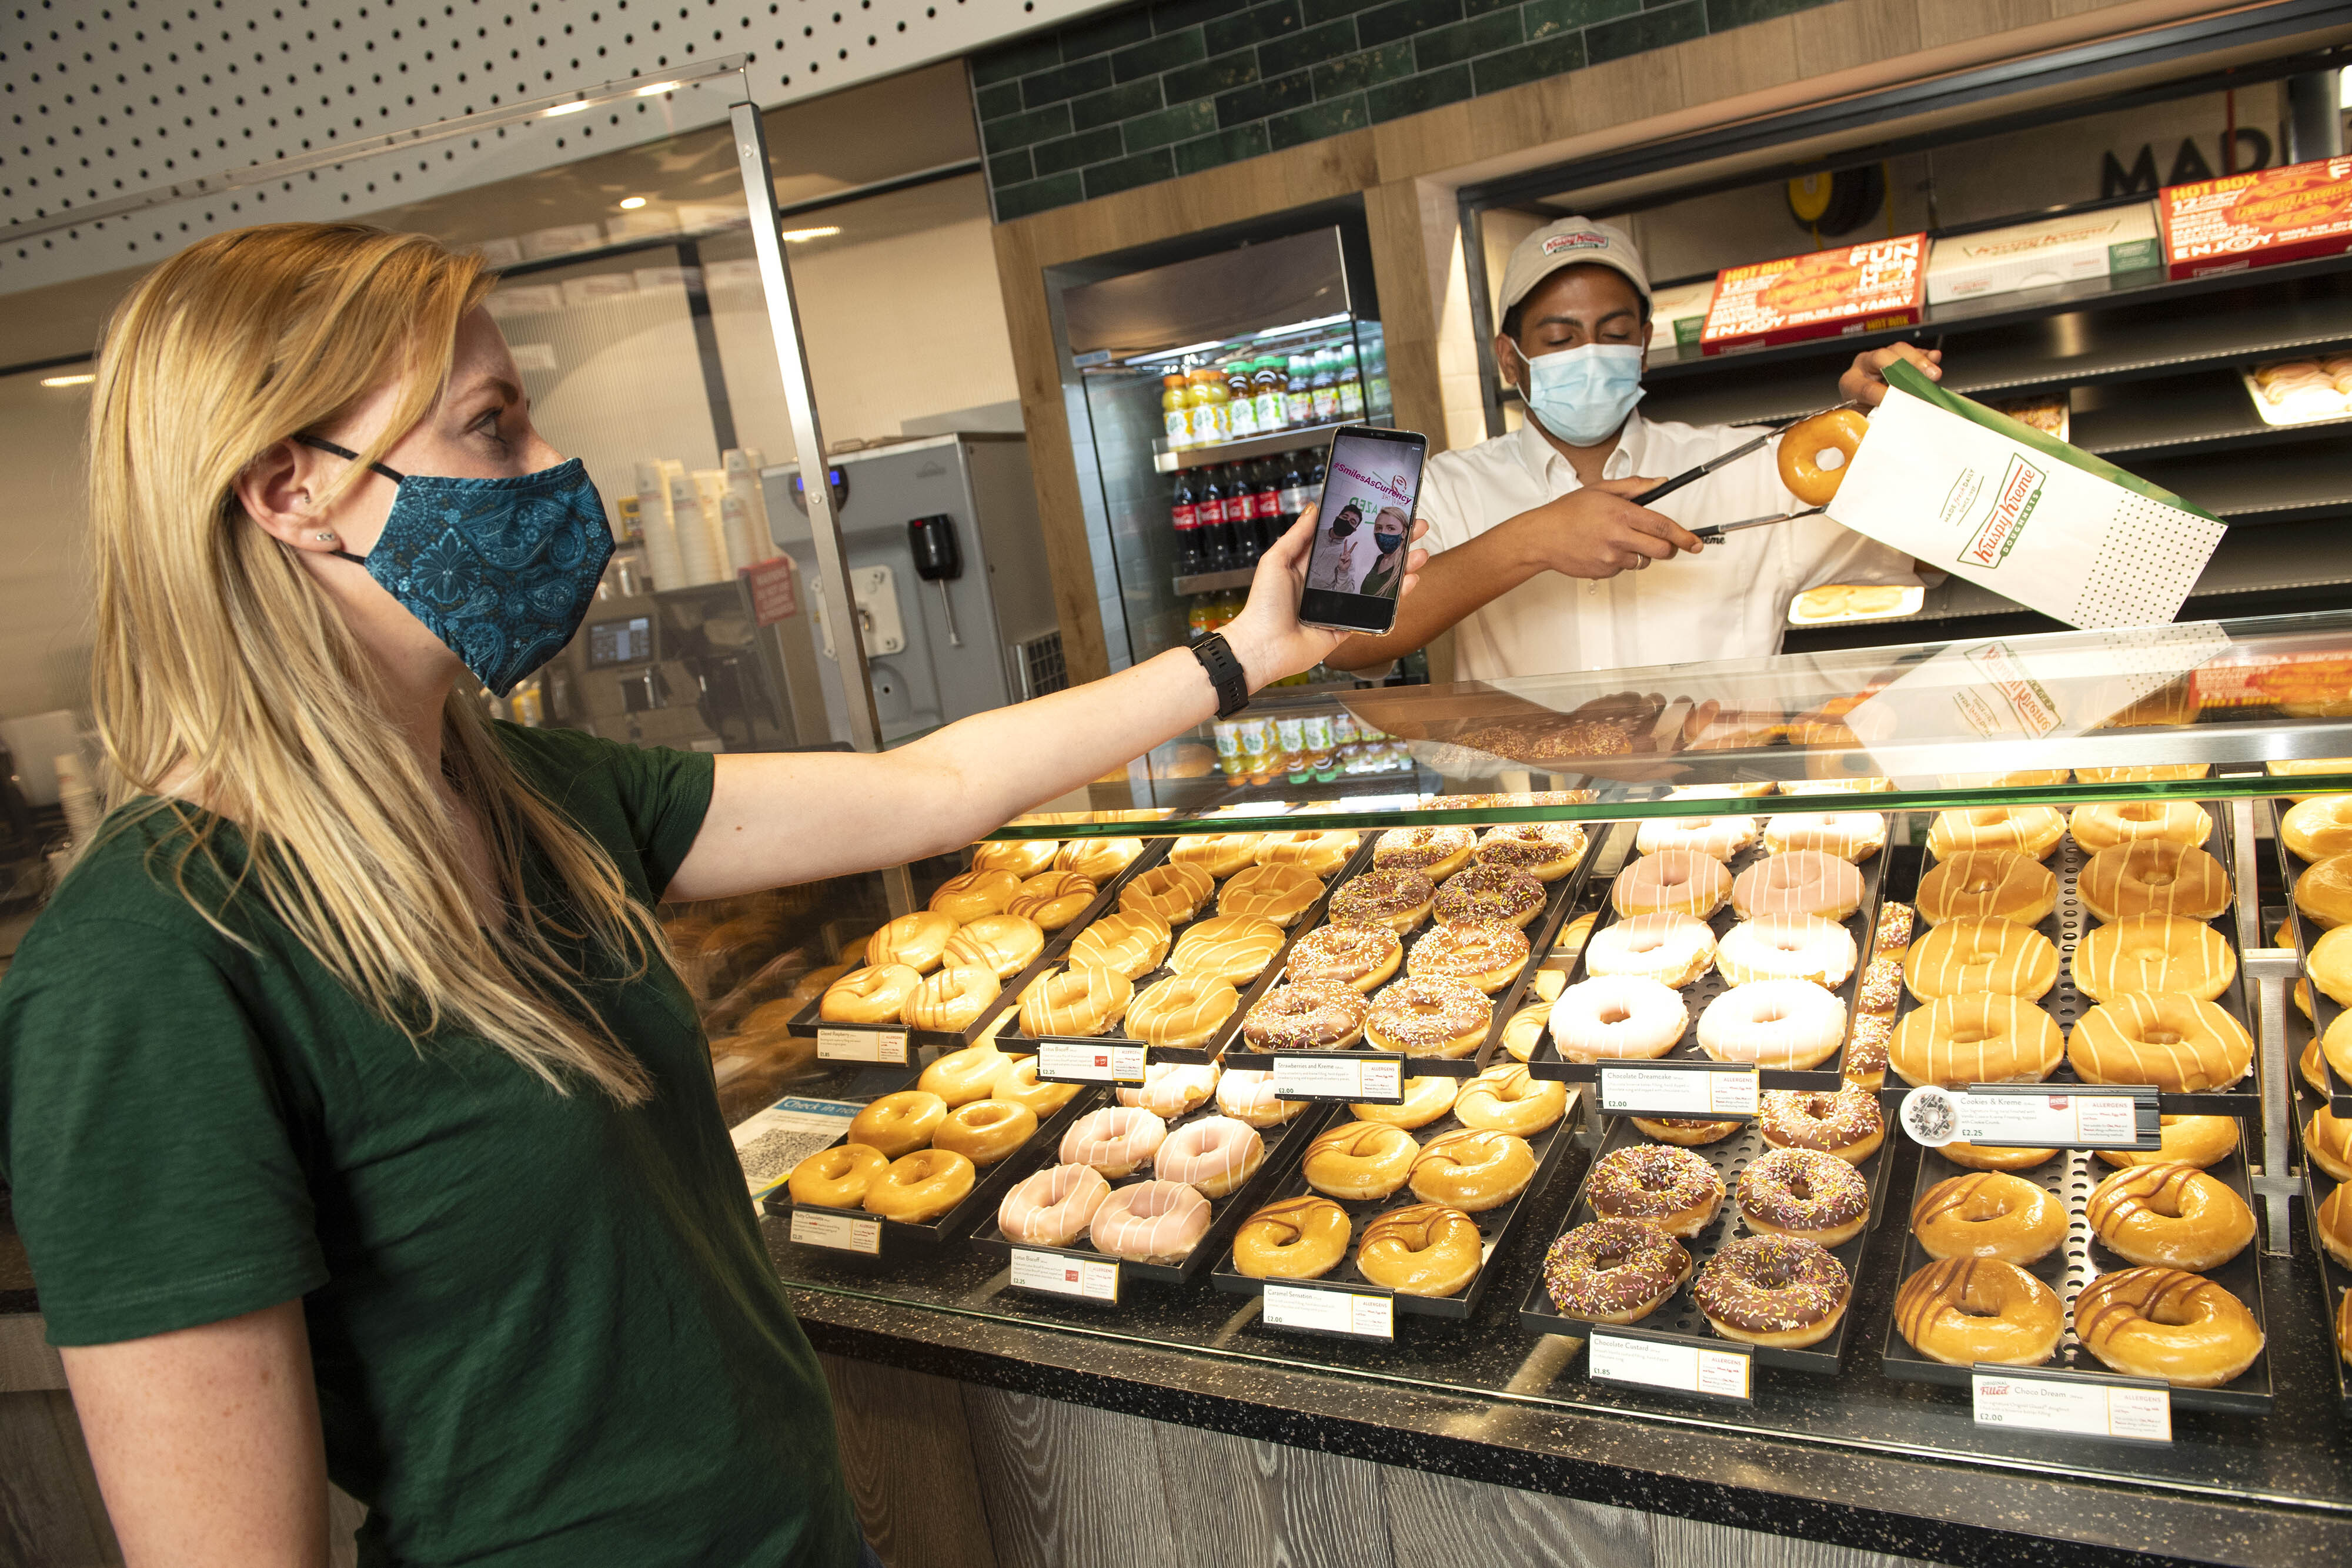 <p>EDITORIAL USE ONLY Customer, Rachel picks up a free Original Glazed doughnut in exchange for showing the #SmilesAsCurrency at Krispy Kreme in Stratford, London as part of their giveaway to celebrate the easing of lockdown. Issue date: Monday May 10, 2021.</p>